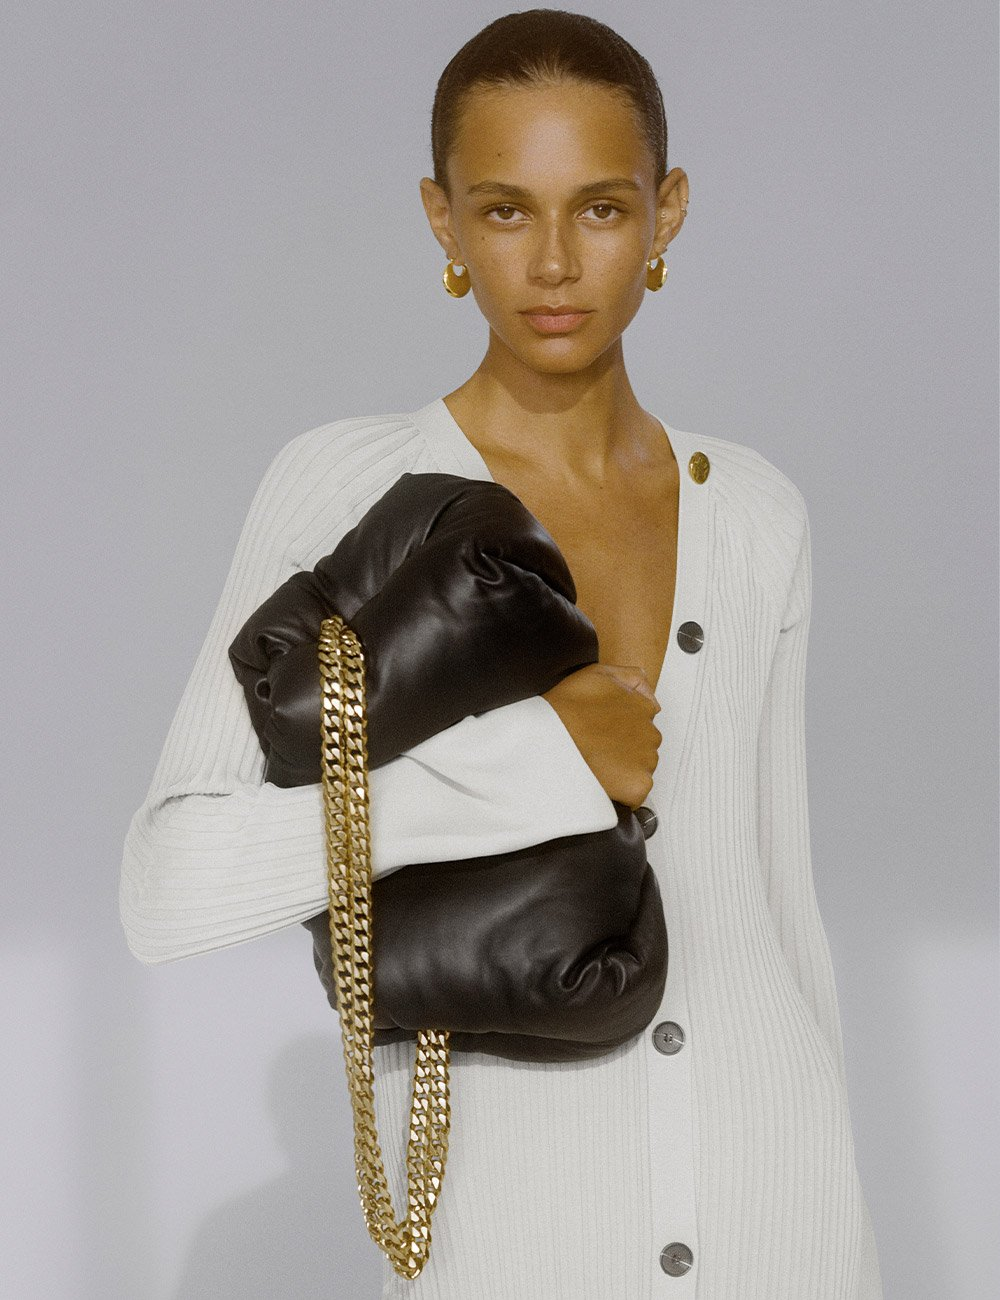 SS21 Look 8: Bag Puffy Bag with White knits